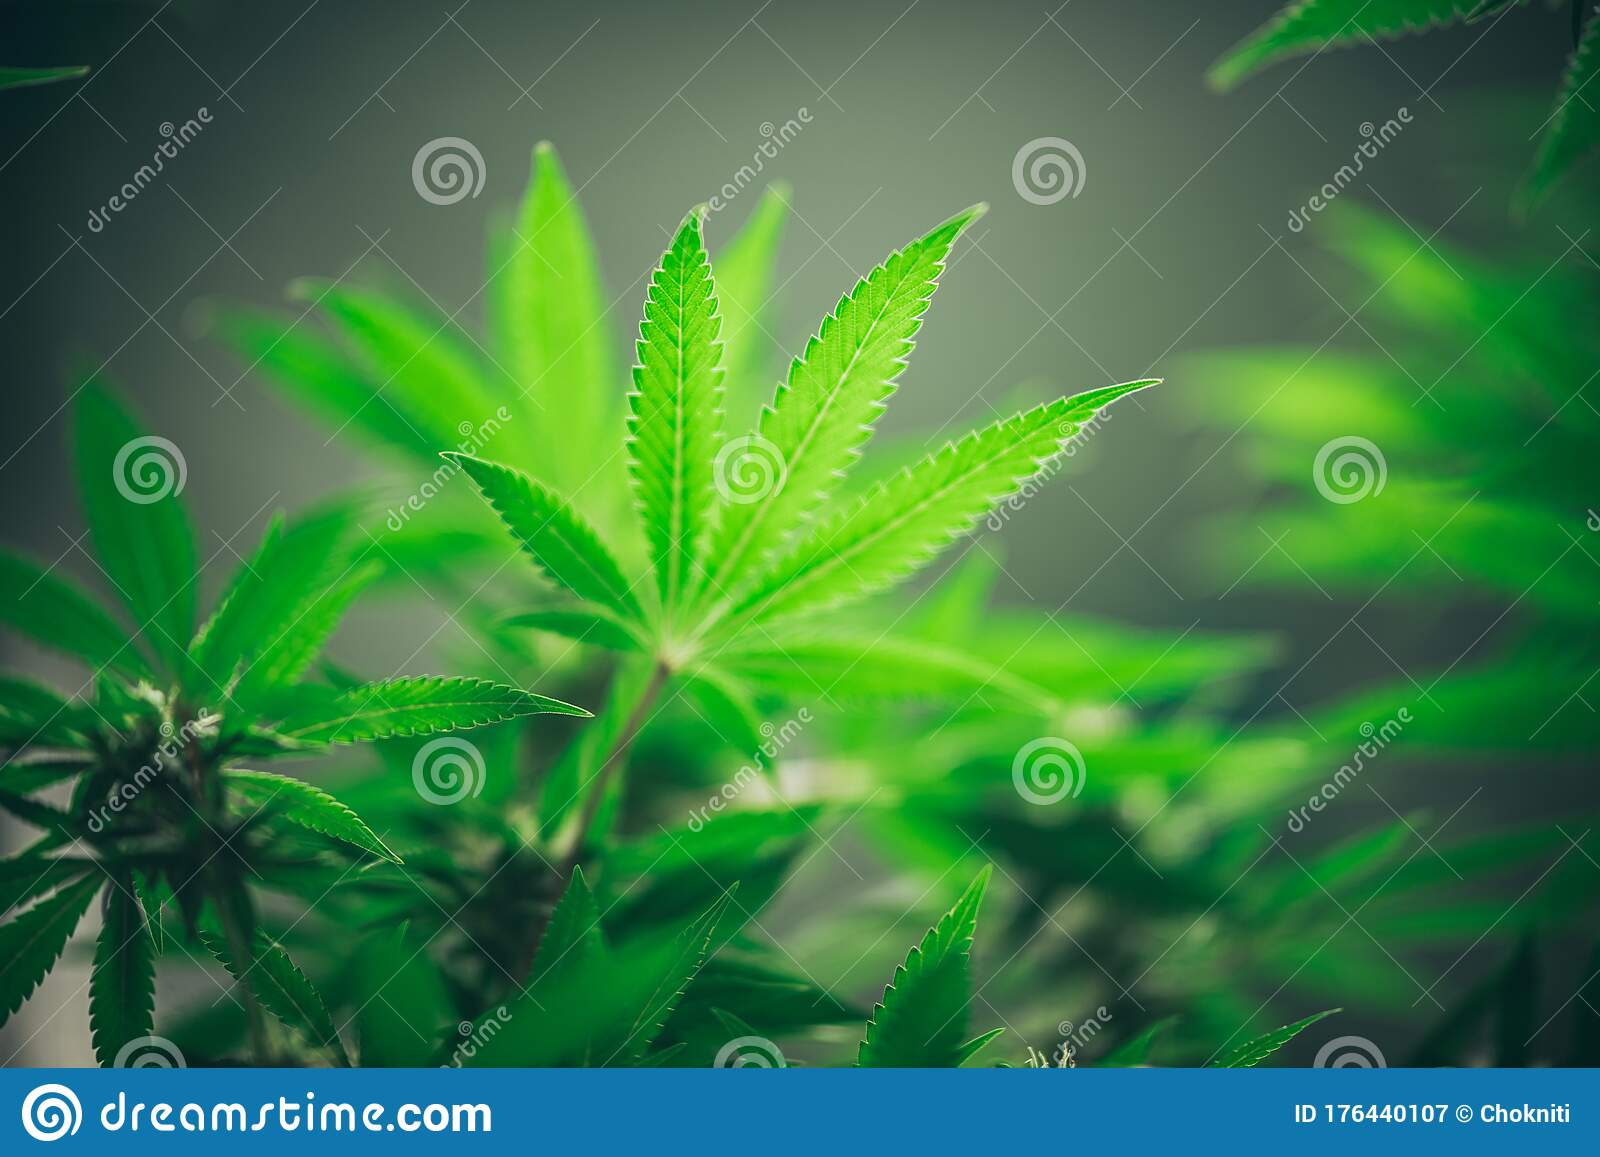 Commercial Hemp Farming In A Greenhouse Industrial Hemp Grown To Produce Cbd Oil And Other Hemp Derived Products Stock Image Image Of Green Hothouse 176440107